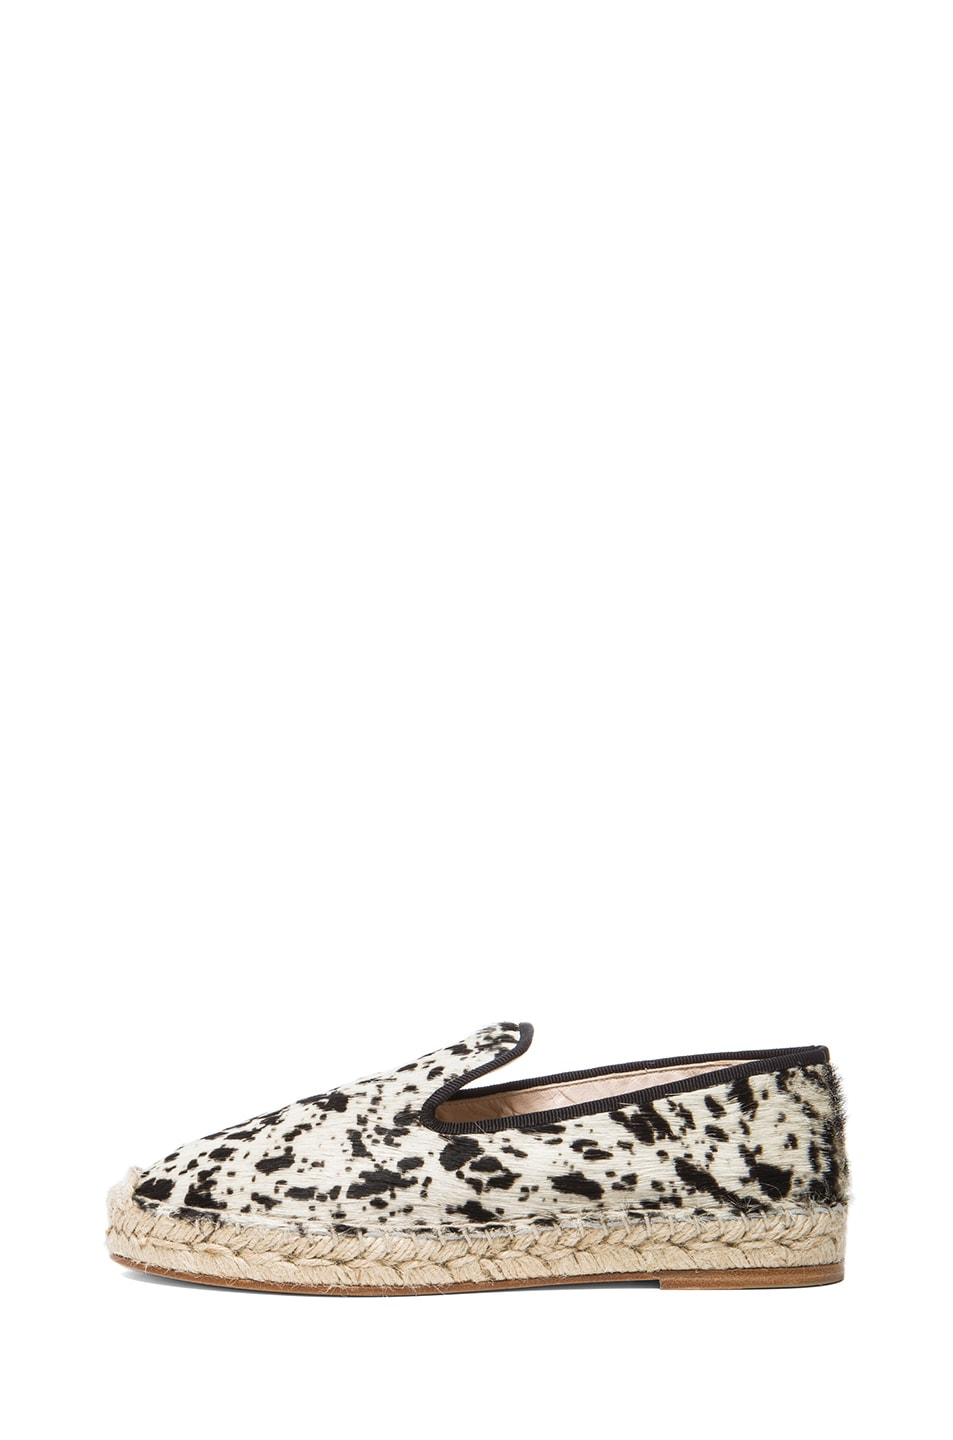 Image 1 of elysewalker los angeles Calf Hair Espadrilles in Gacela